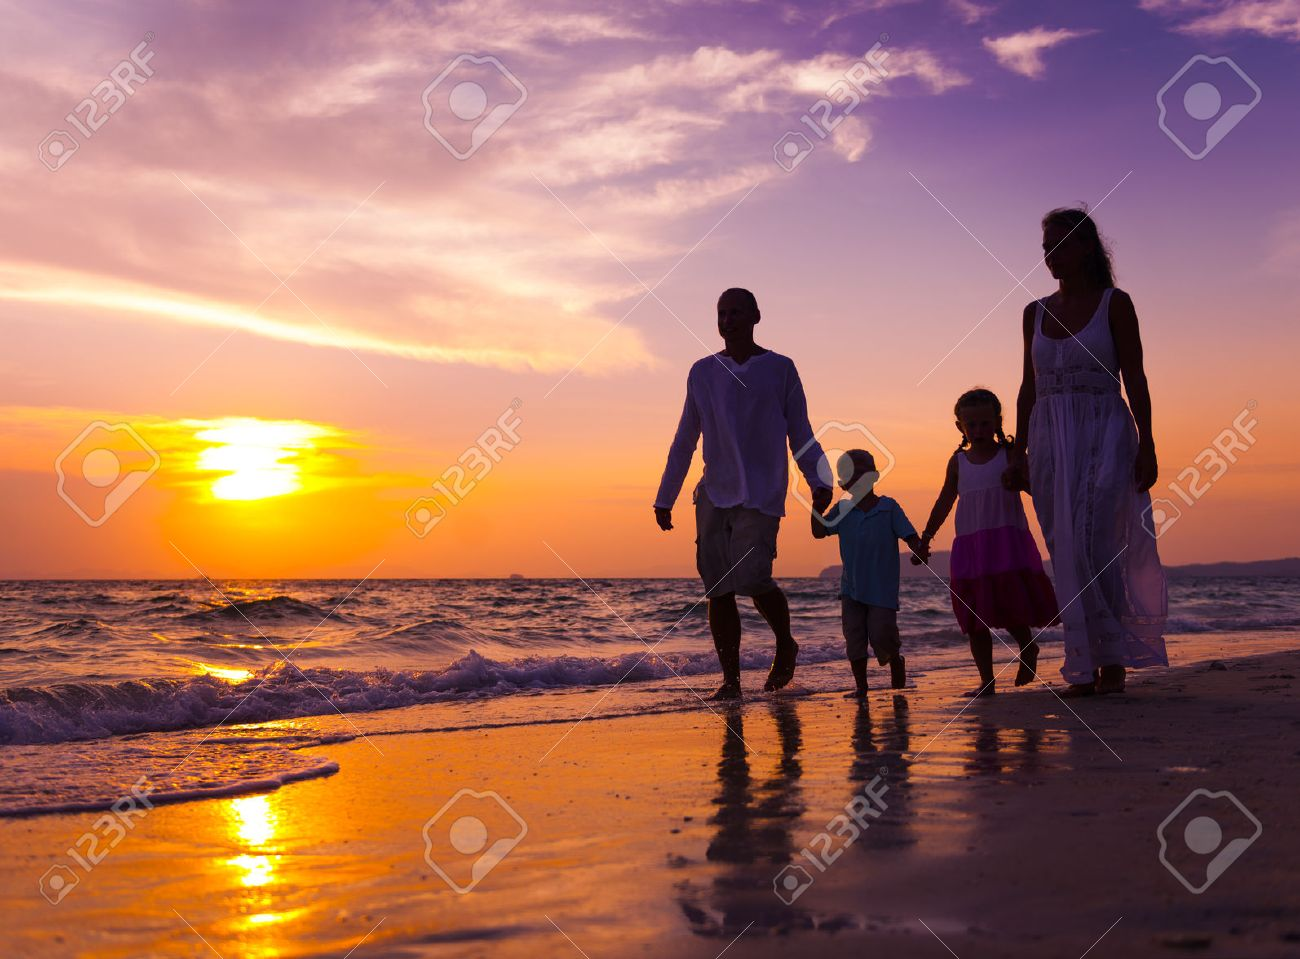 Family walking on the beach. - 34401208